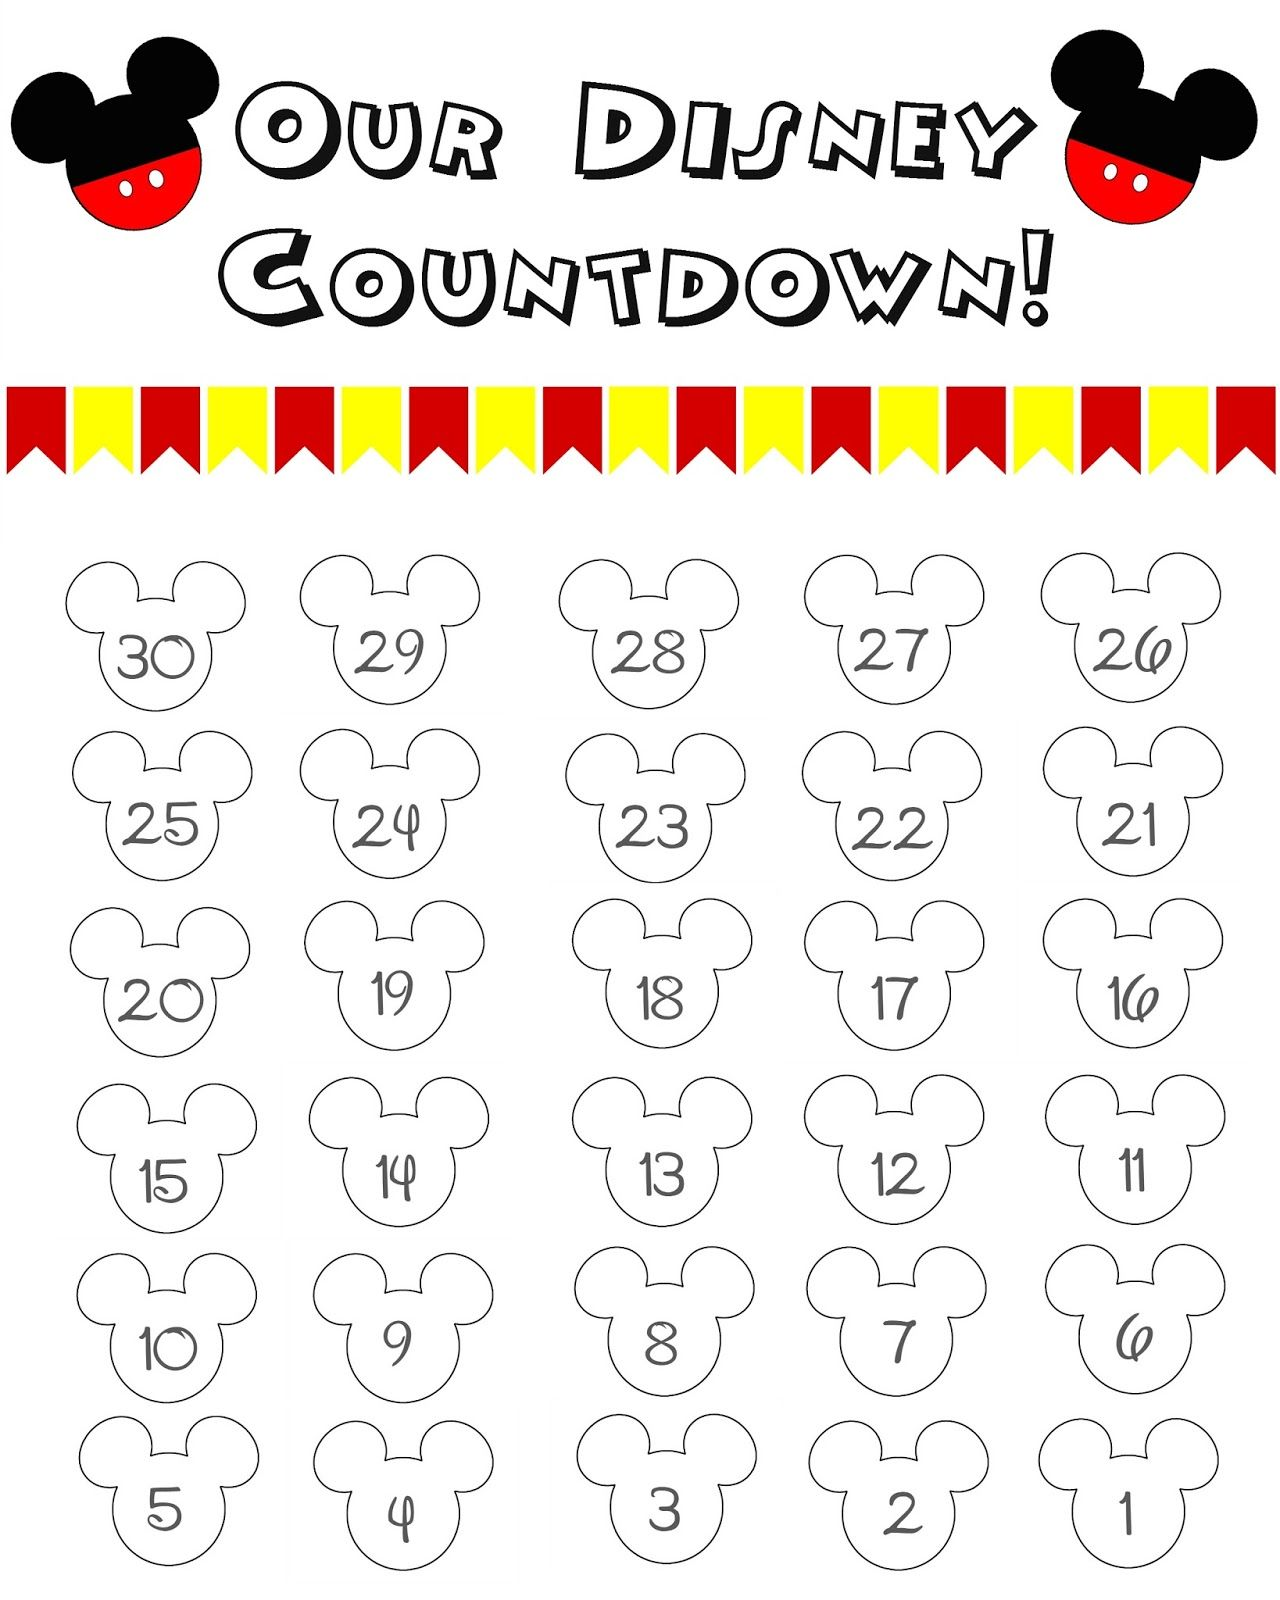 picture regarding Countdown Printable identify Disney Earth Countdown Calendar - Free of charge Printable The Momma